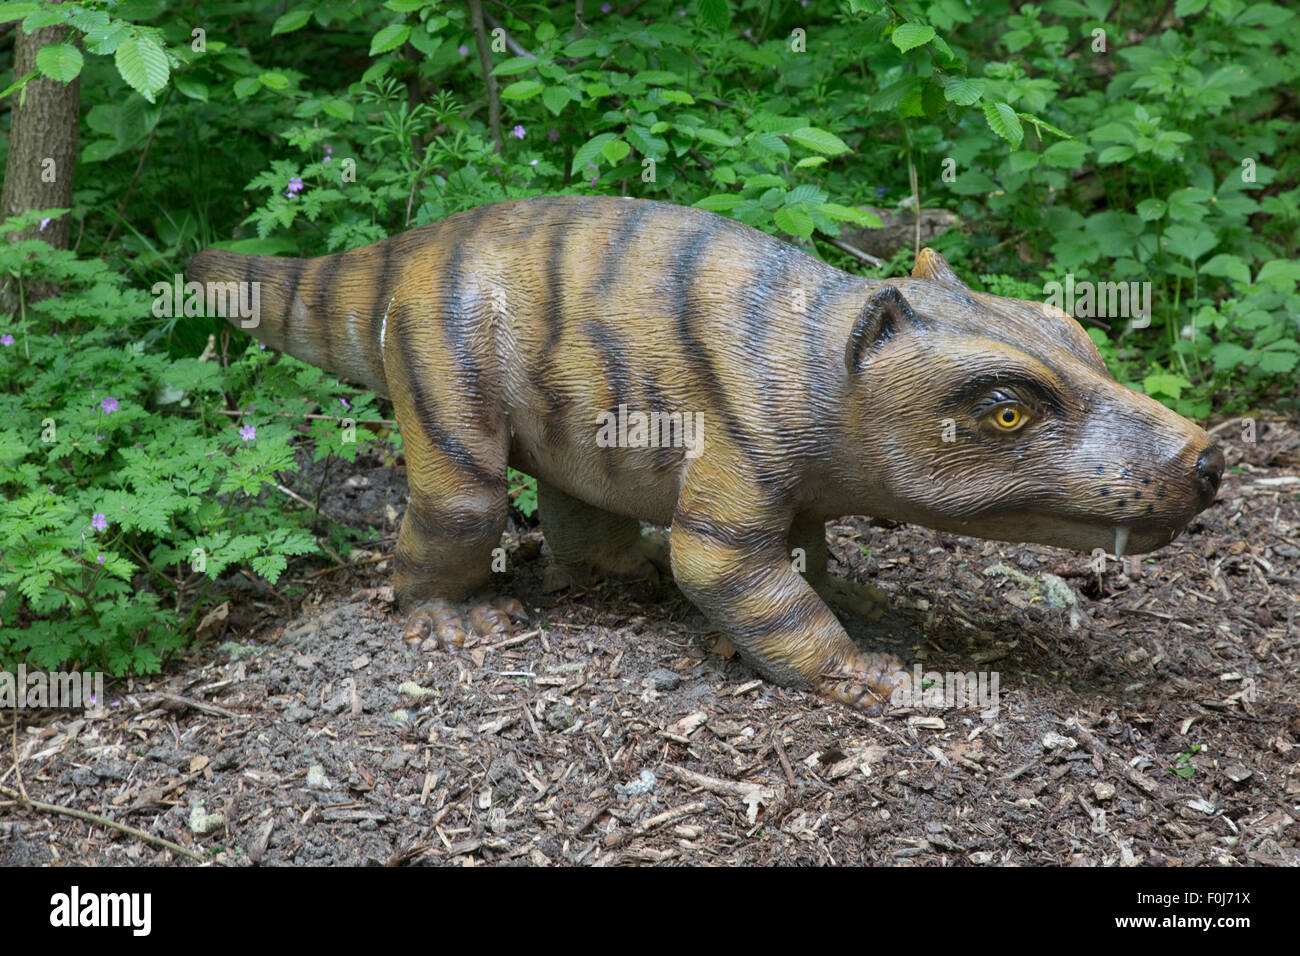 Cynognathus an extinct cynodont predatory therapsid found in the Triassic Dinosaurier Park Germany - Stock Image